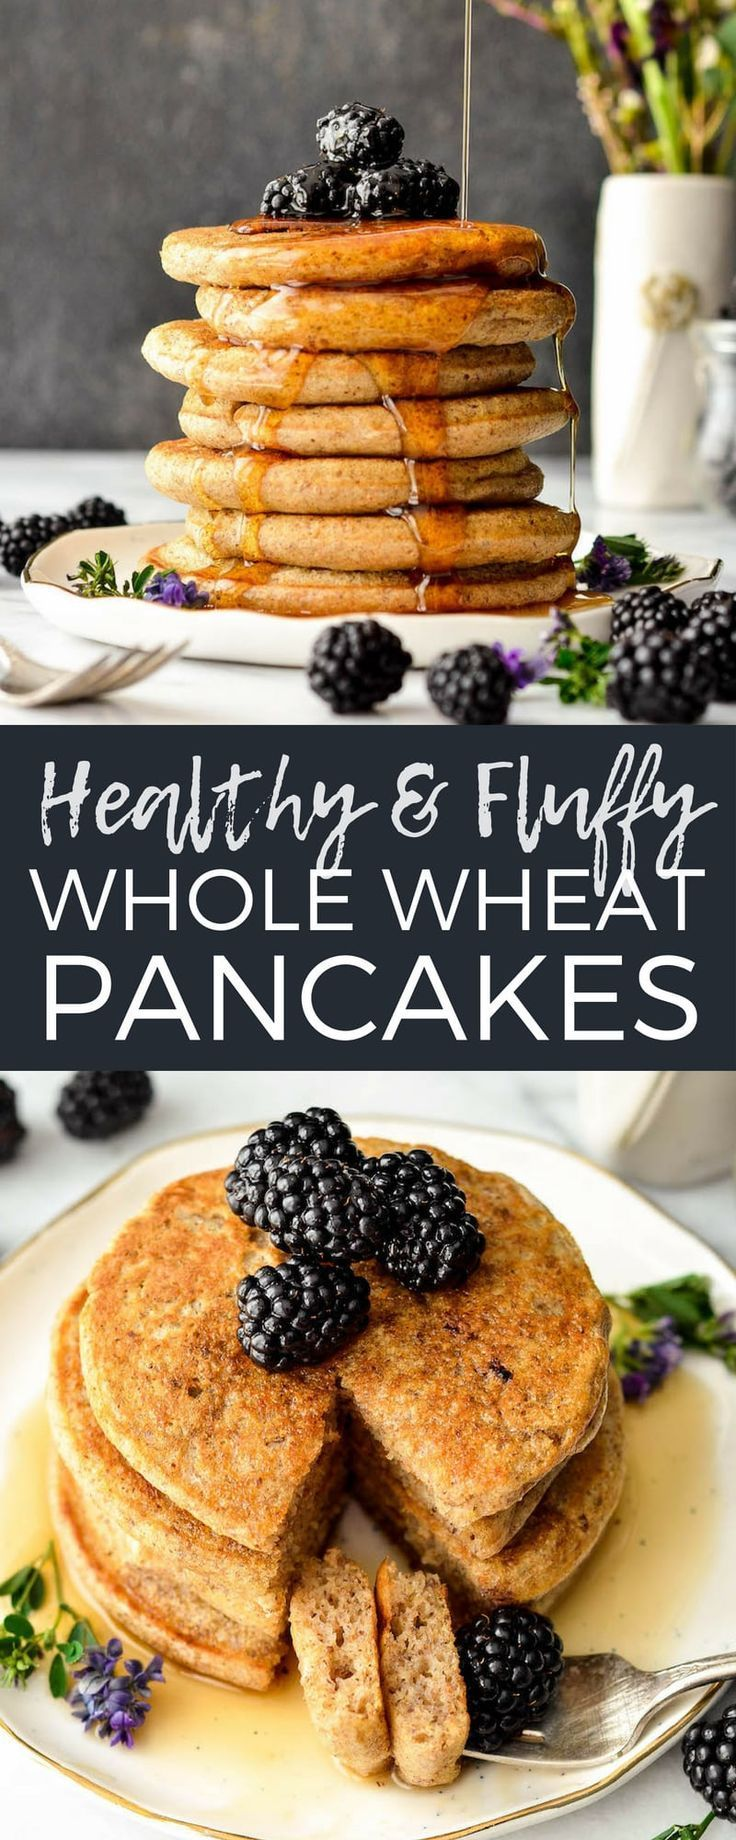 These Fluffy Whole Wheat Pancakes With Ground Flaxseed And Greek Yogurt Or Buttermilk Will Whole Wheat Pancakes Healthy Pancake Recipes Wheat Pancake Recipe